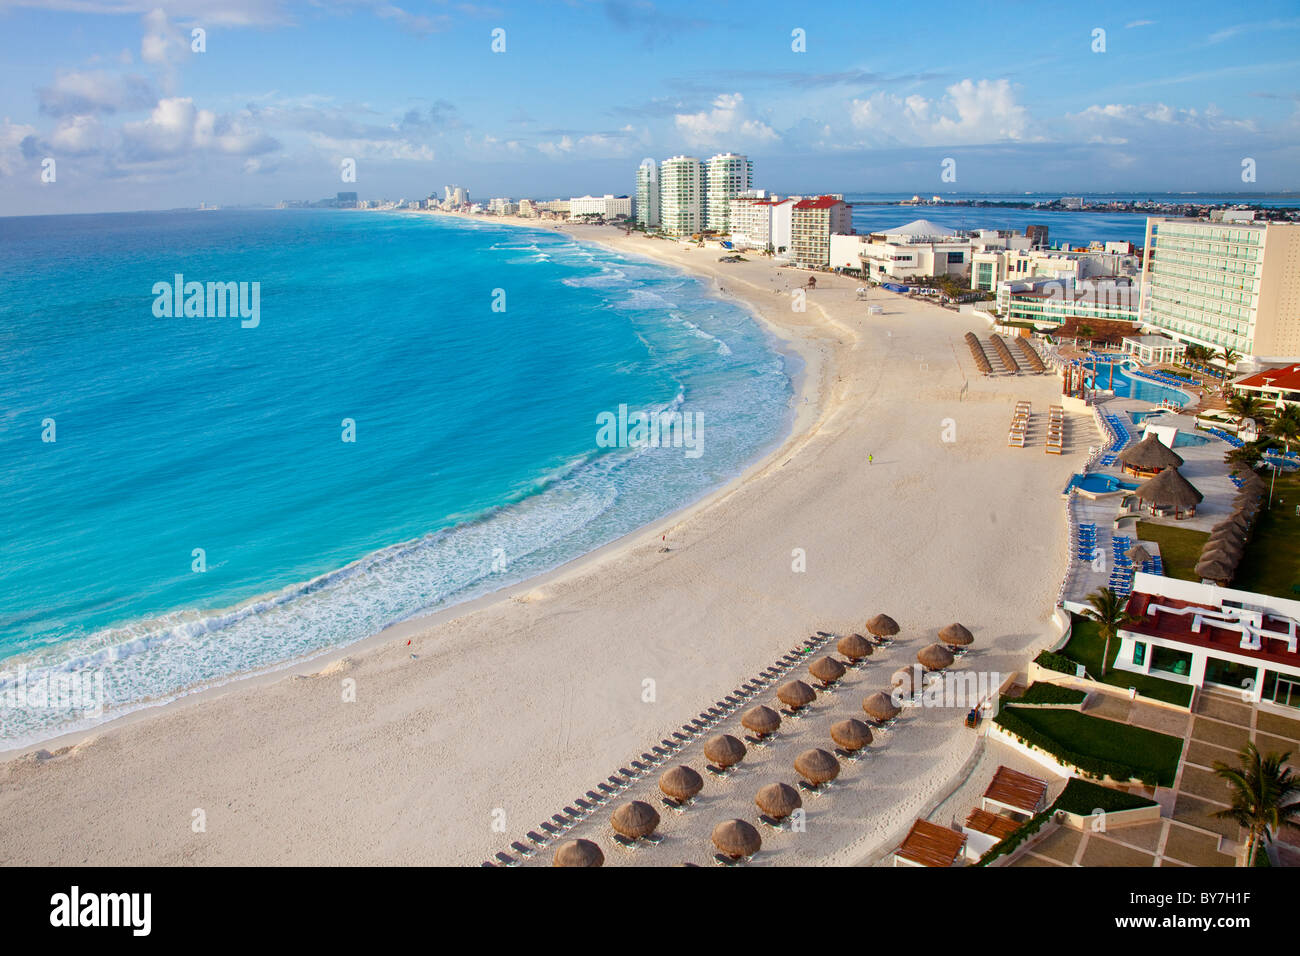 Beach in Cancun, Mexico - Stock Image